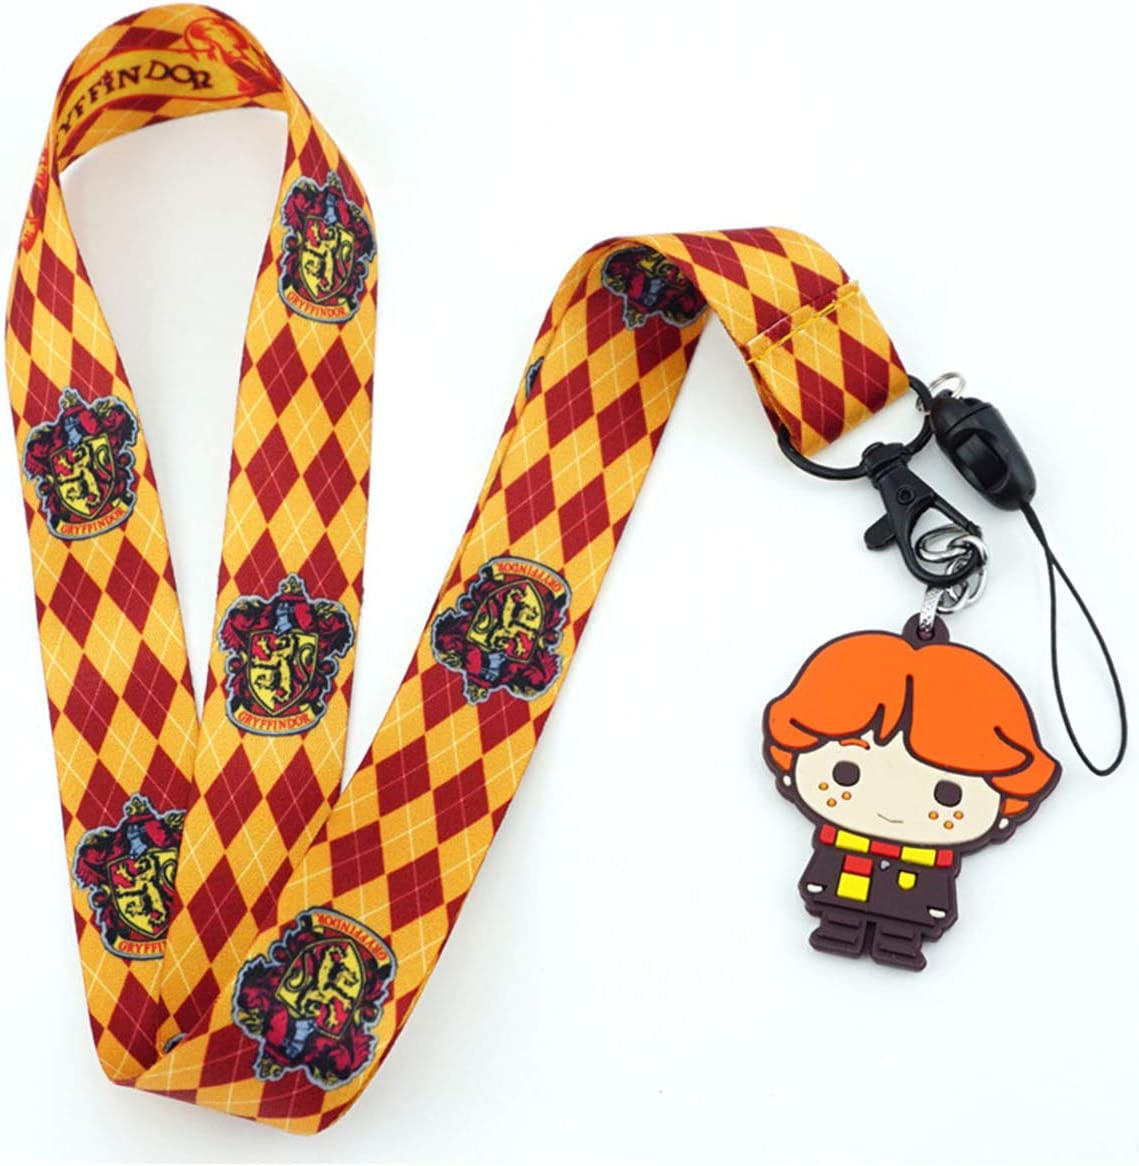 Hogwarts School of Witchcraft and Wizardry Neck Strap Lanyards for Keys ID Card Mobile Phone Strap Holder Rope Pendant Key Chain Light Khaki